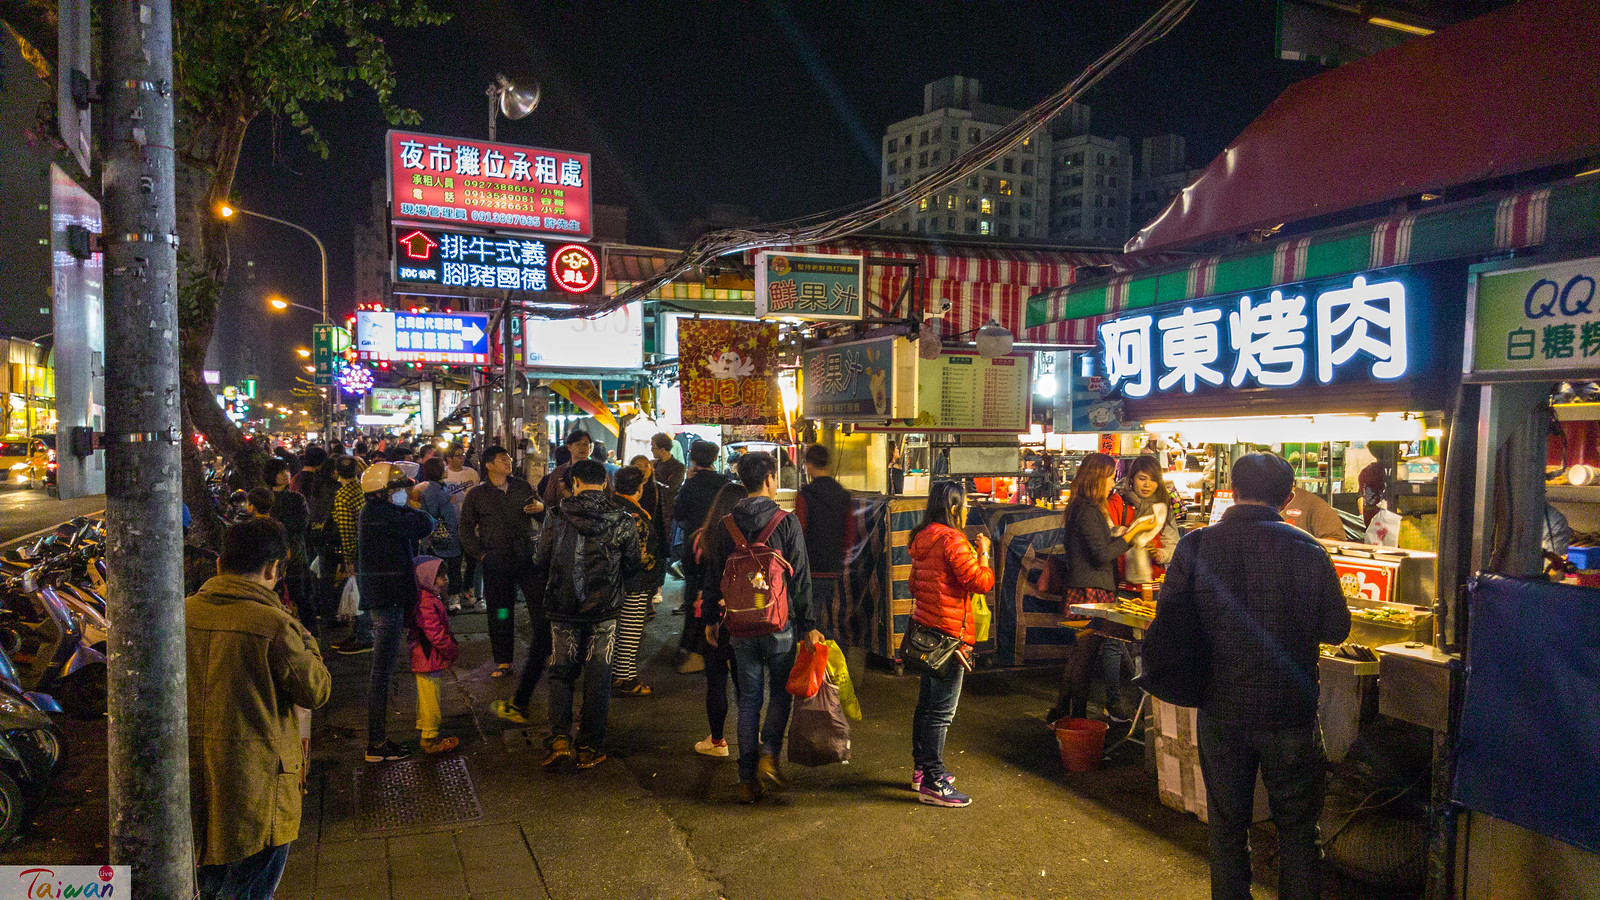 Rueling Night Market